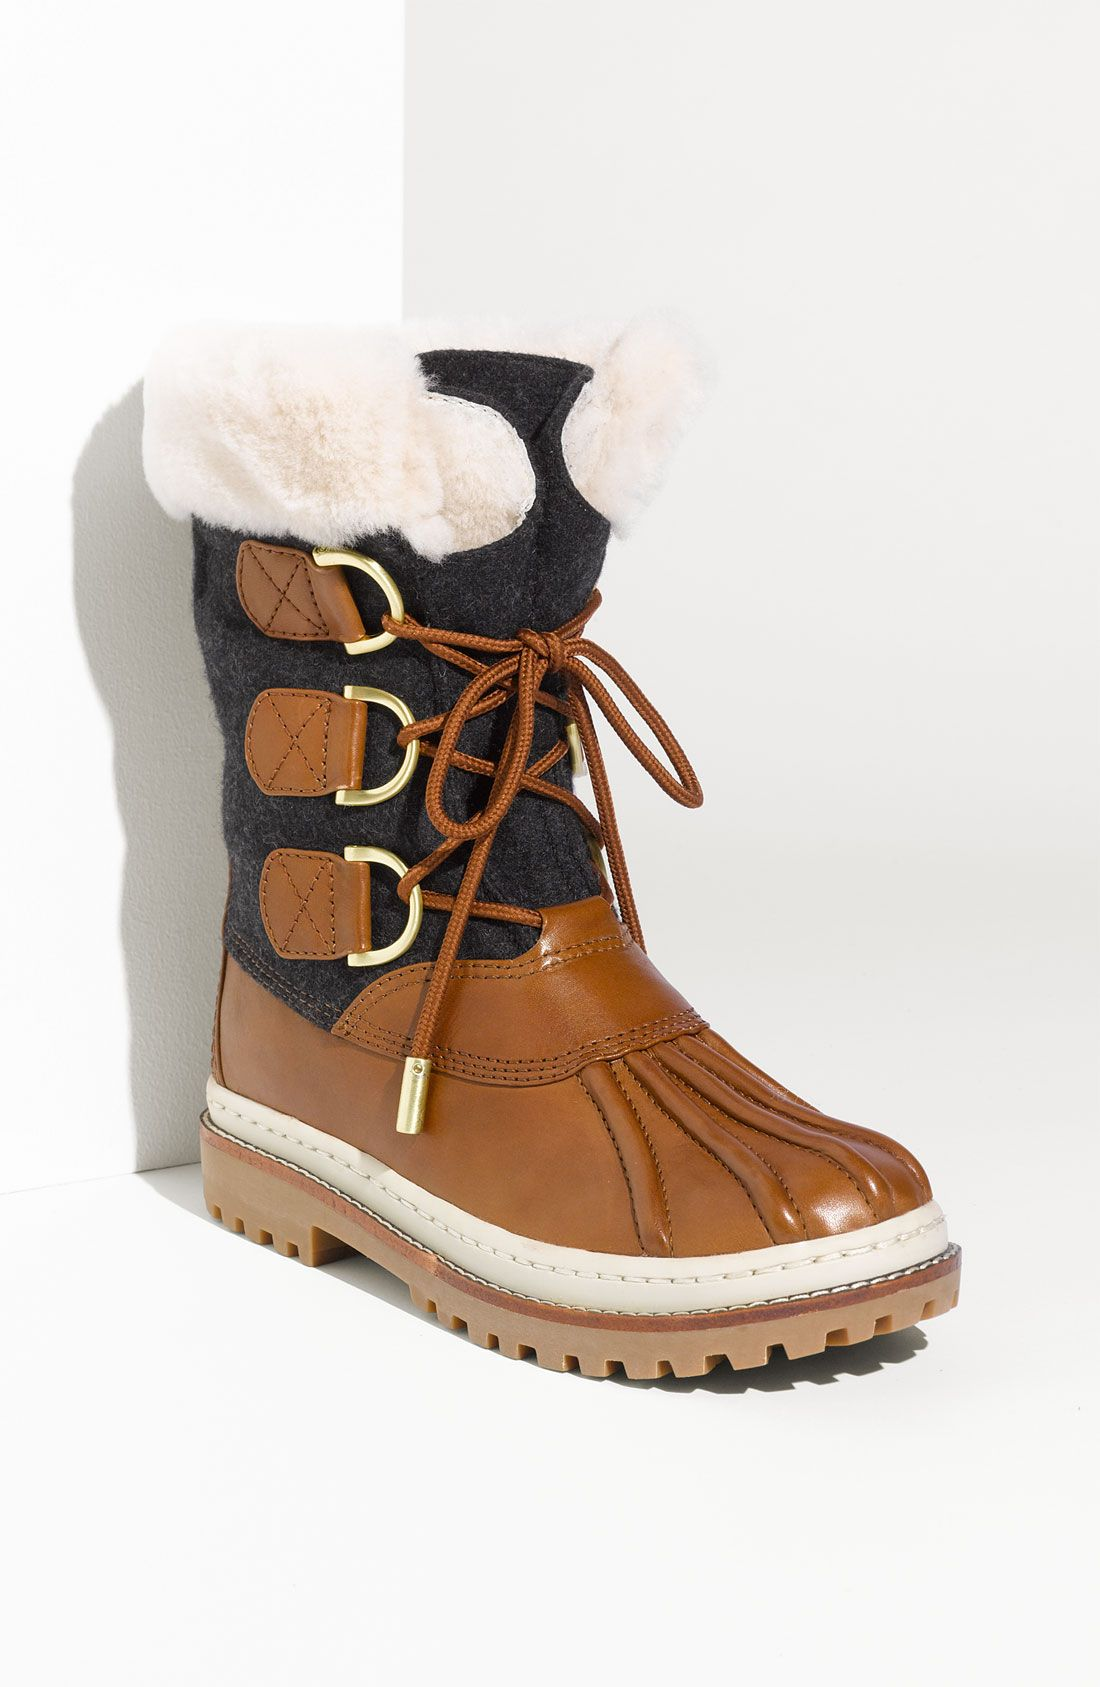 bfd8196dcced Tory Burch Flannel   Leather Duck Boot